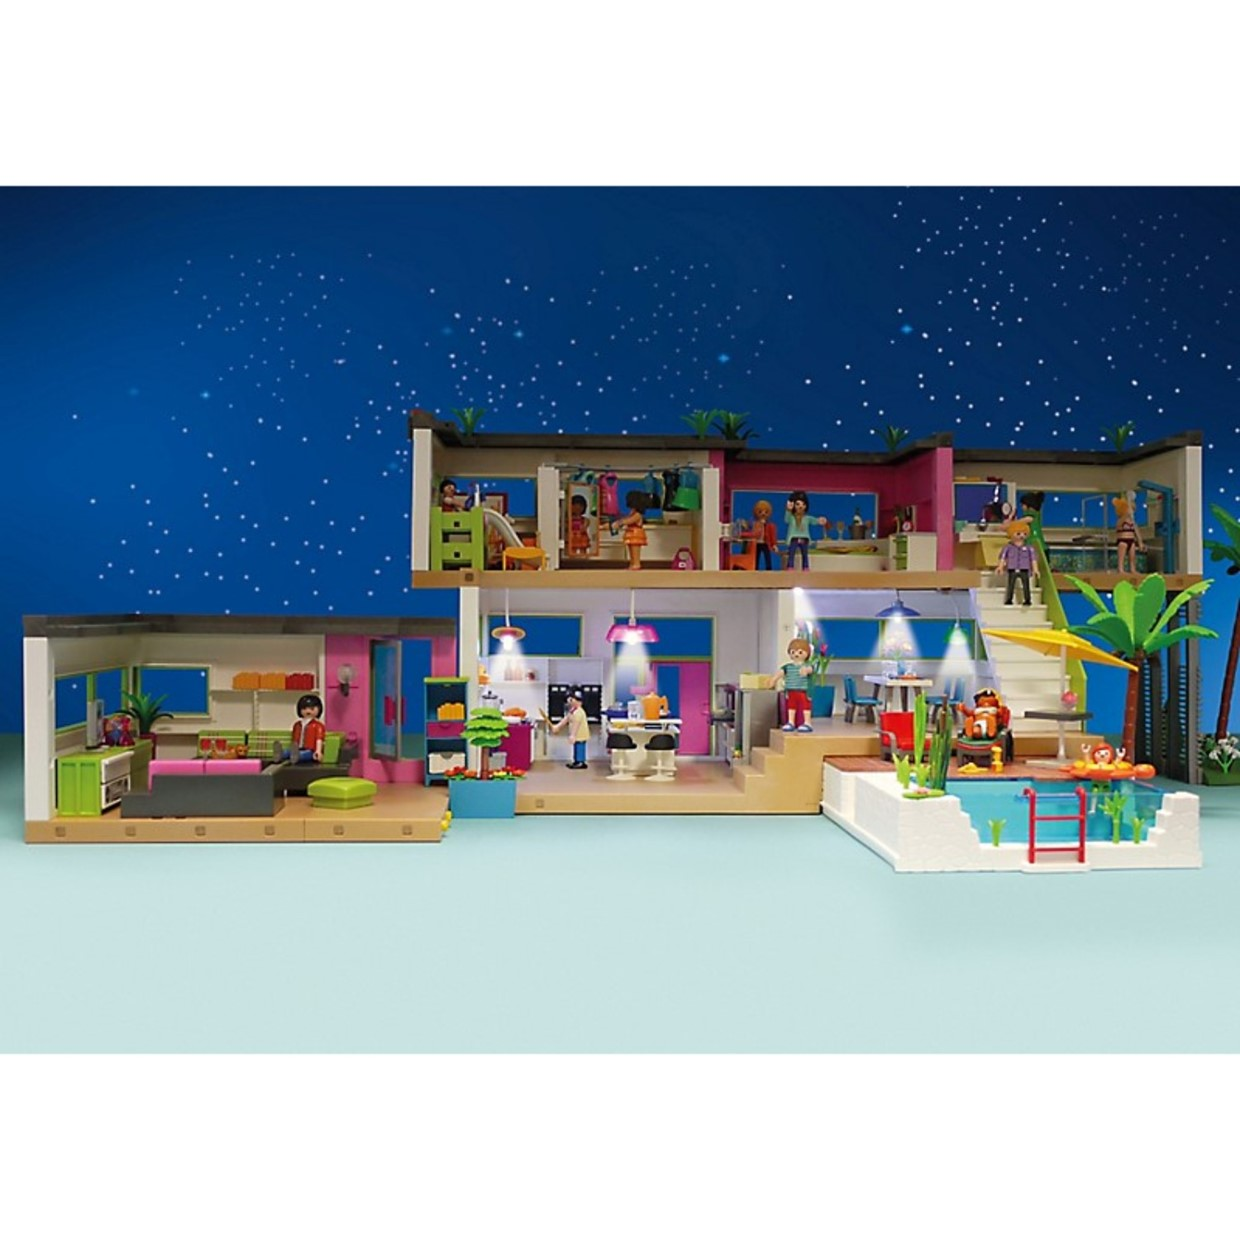 16 Villa Moderne Playmobil Pictures To Pin On Pinterest